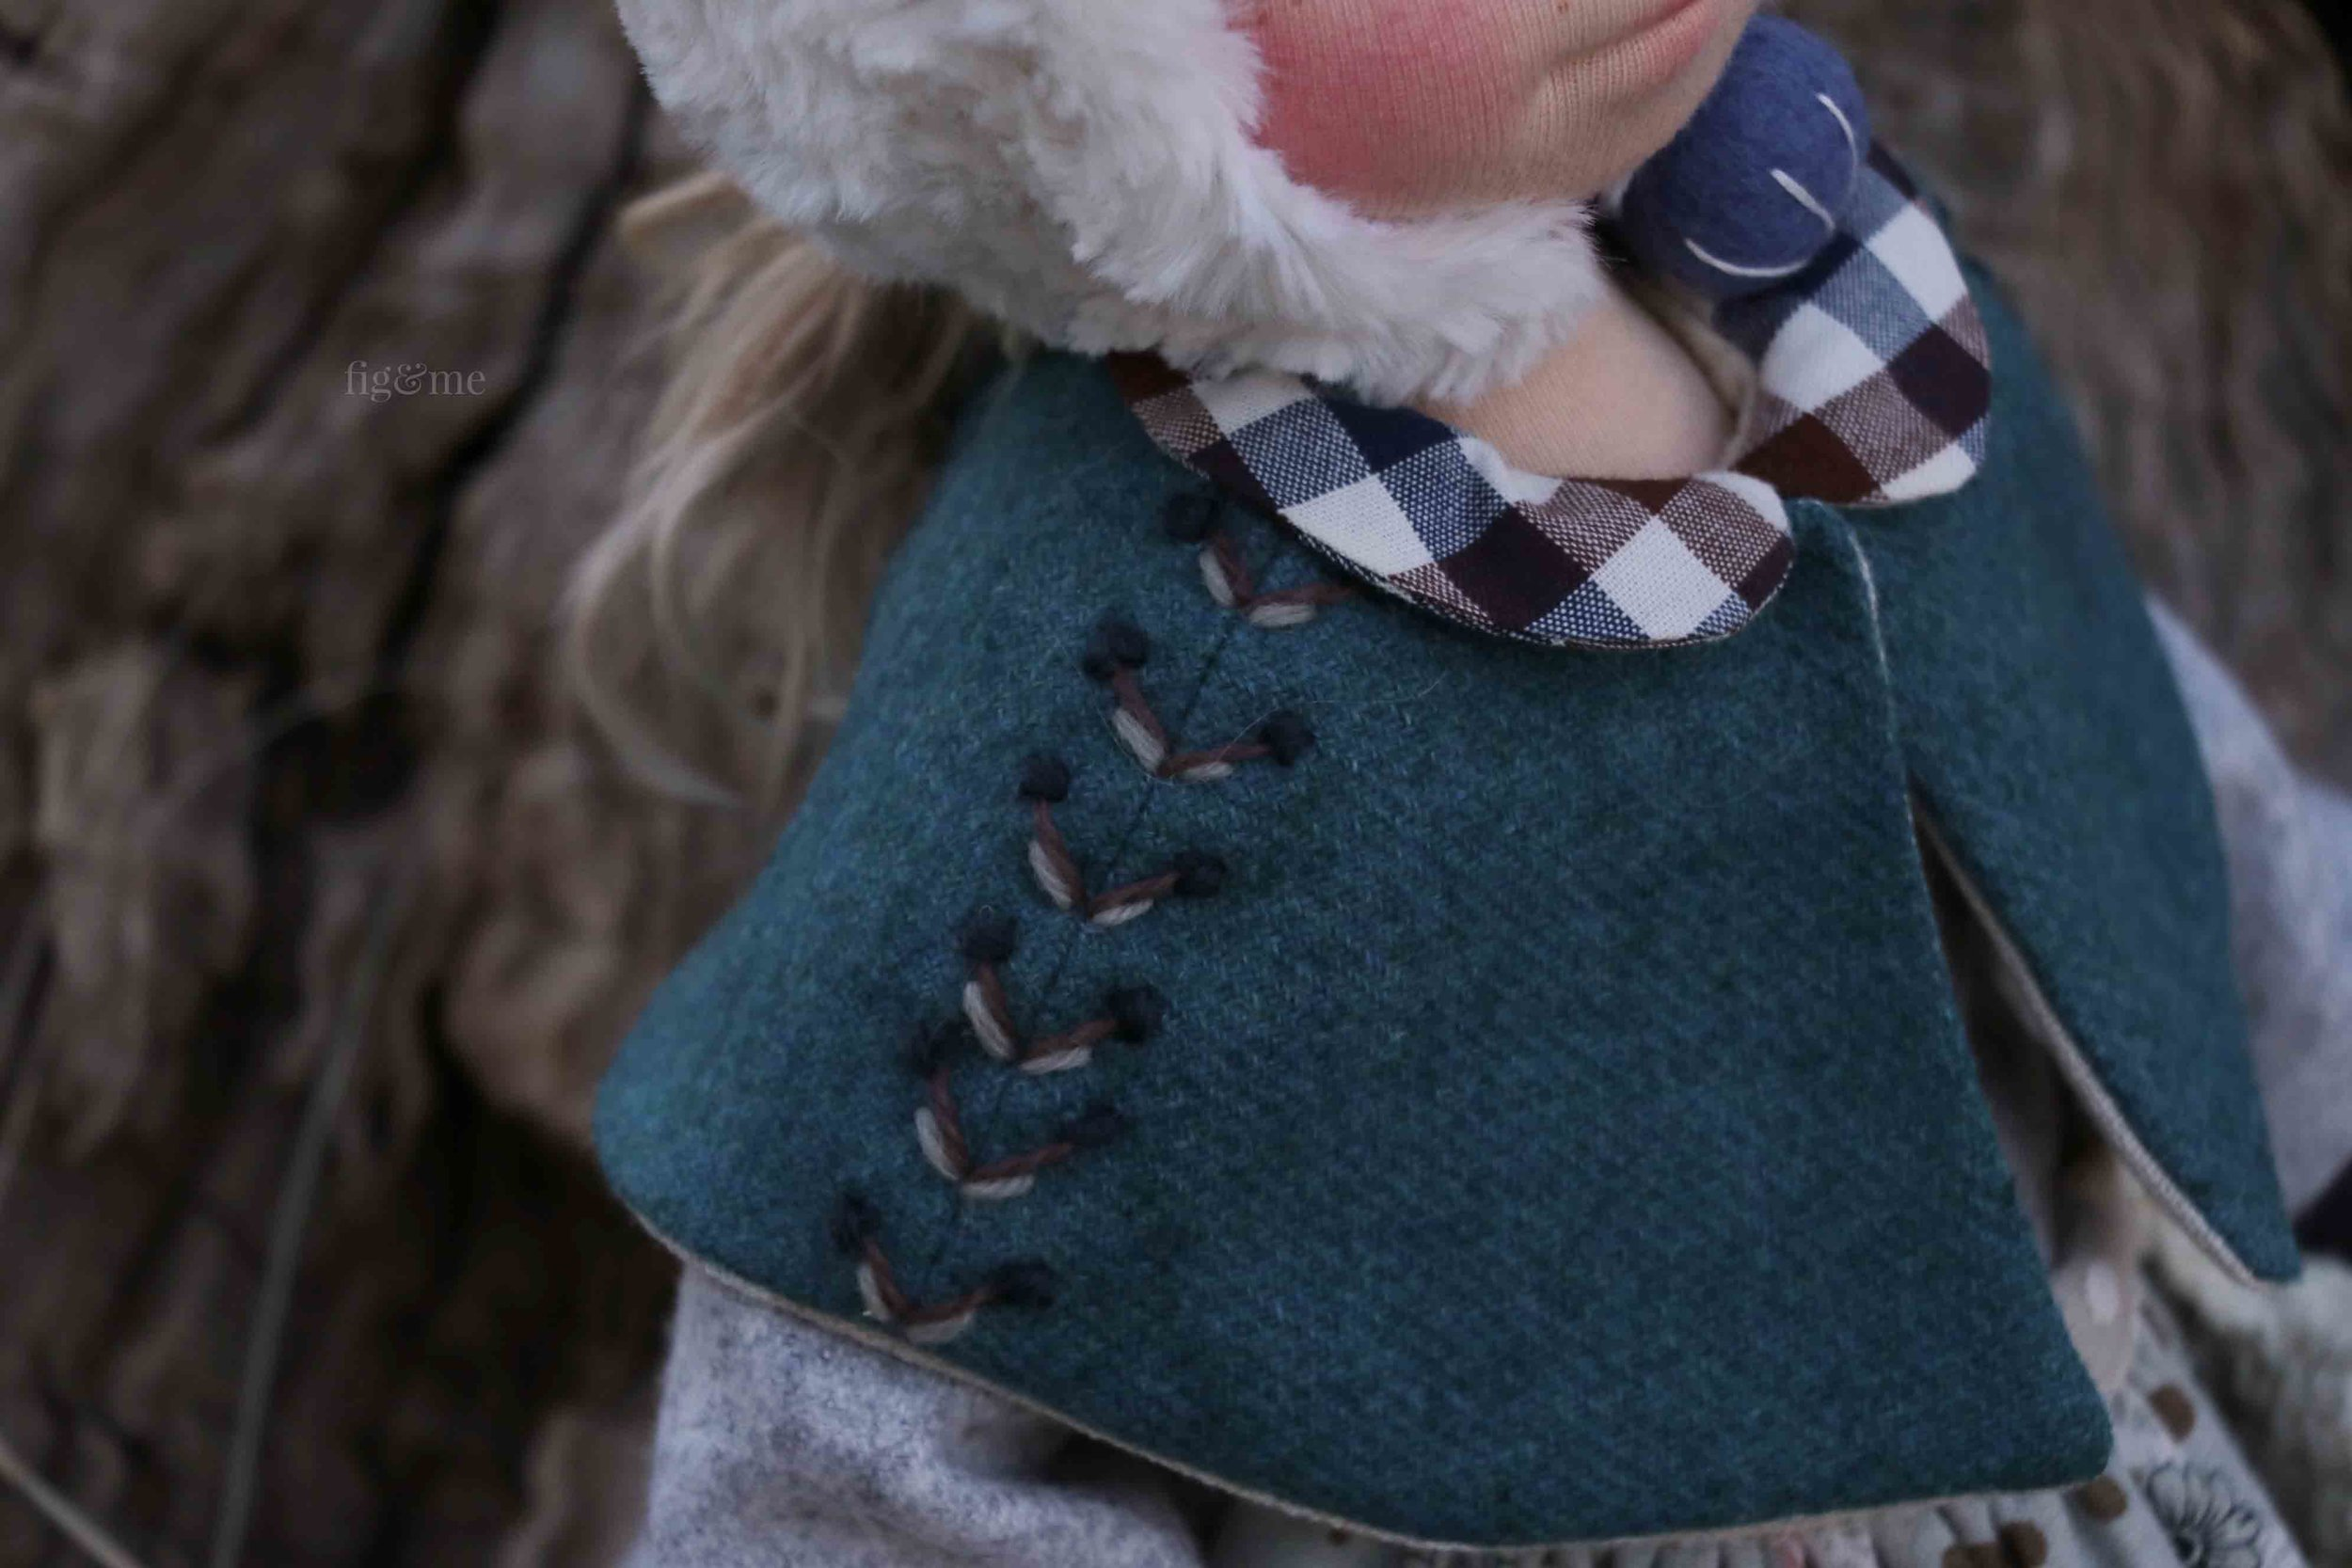 Wool embroidery on doll cape, by Fig and Me.